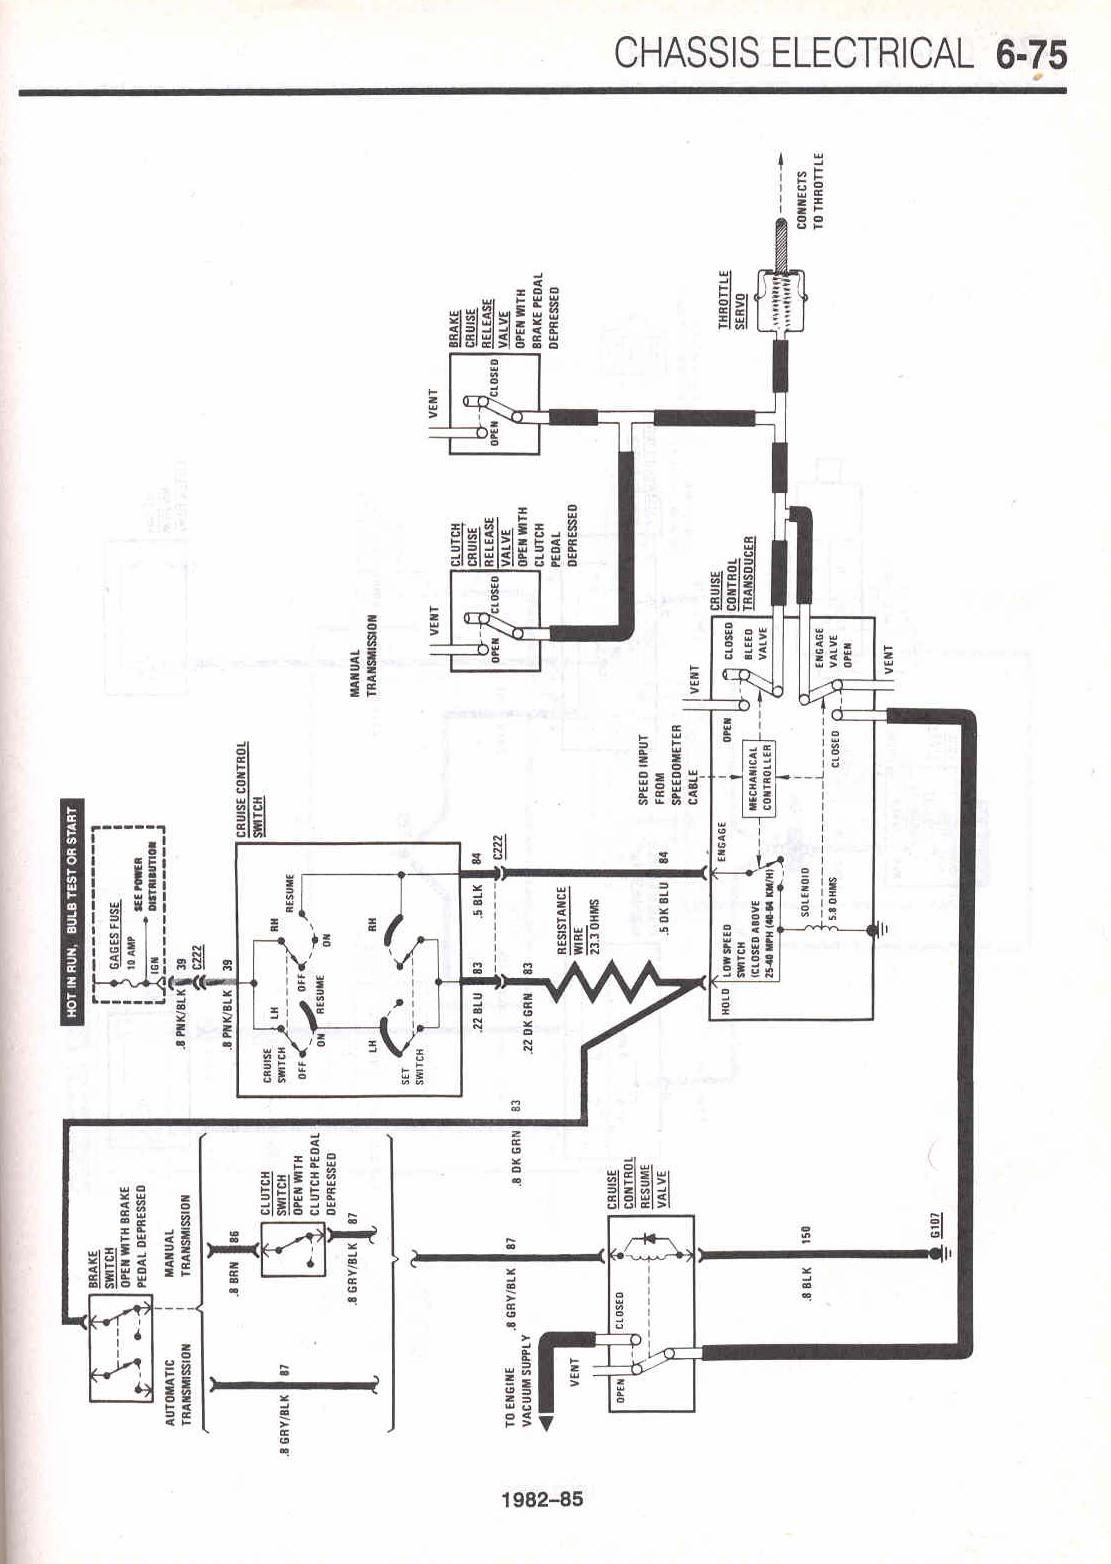 89 Camaro Wiring Diagram For Your Needs